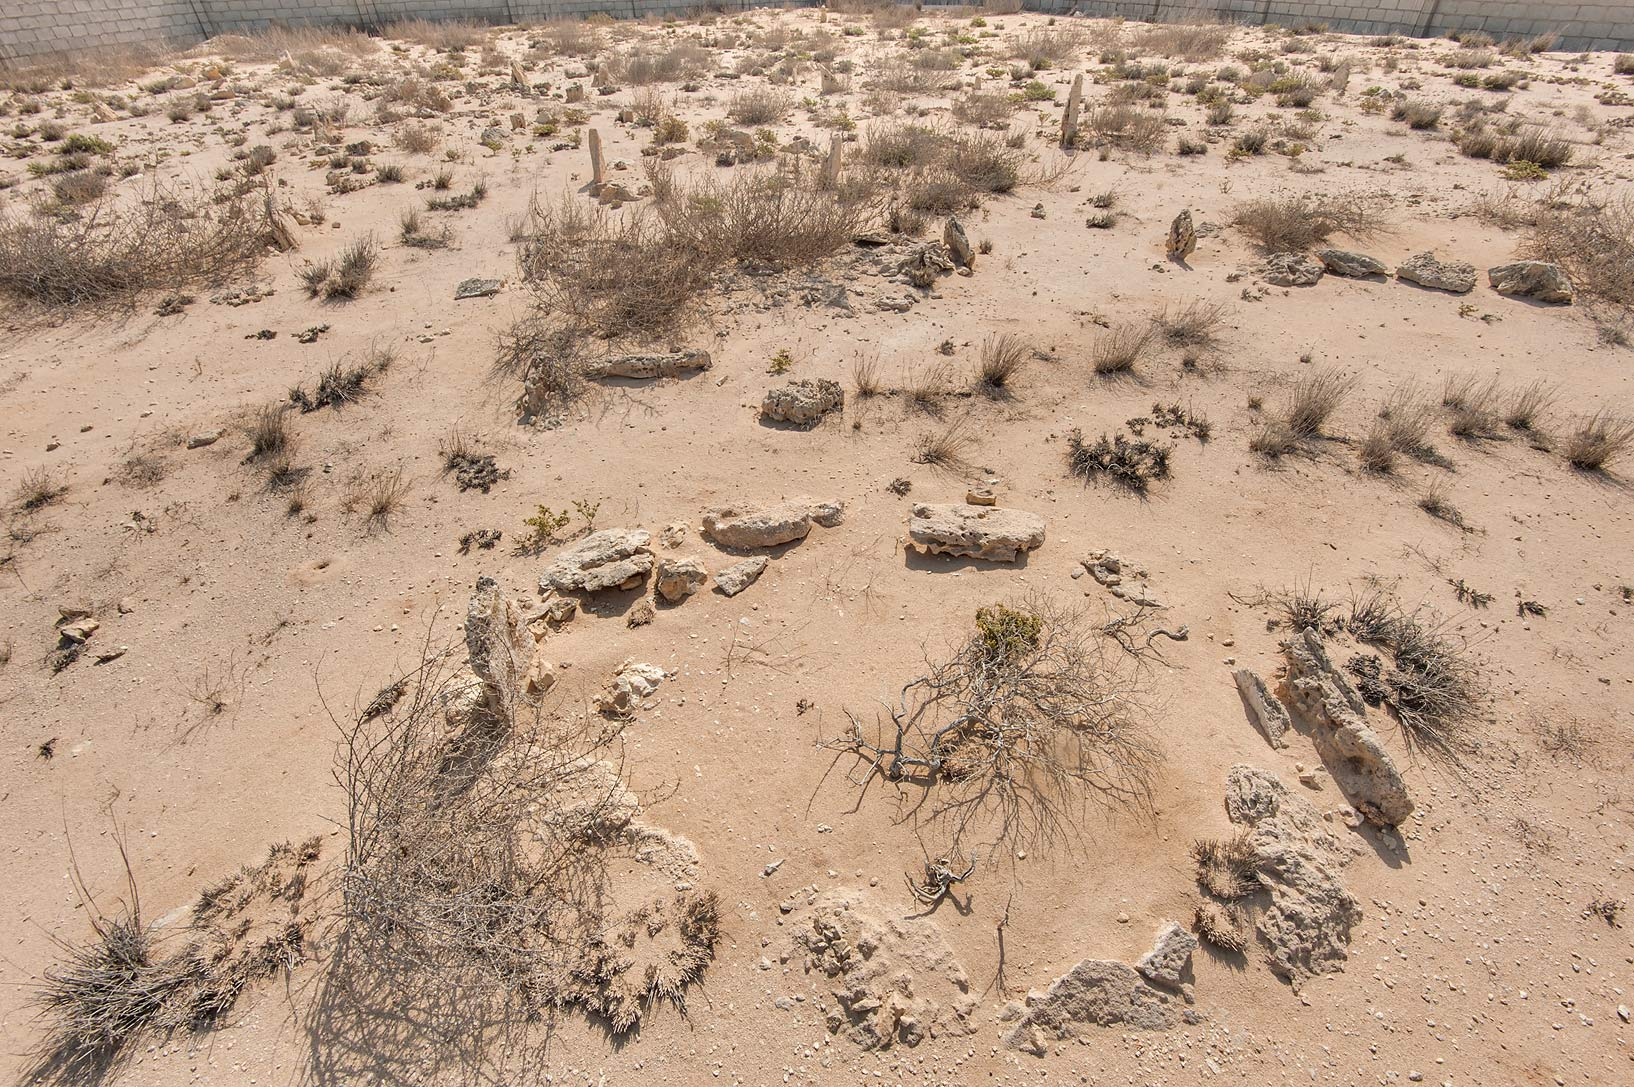 Tombs in a cemetery of a fishing village of Al...coast in Madinat Al Shamal area. Qatar